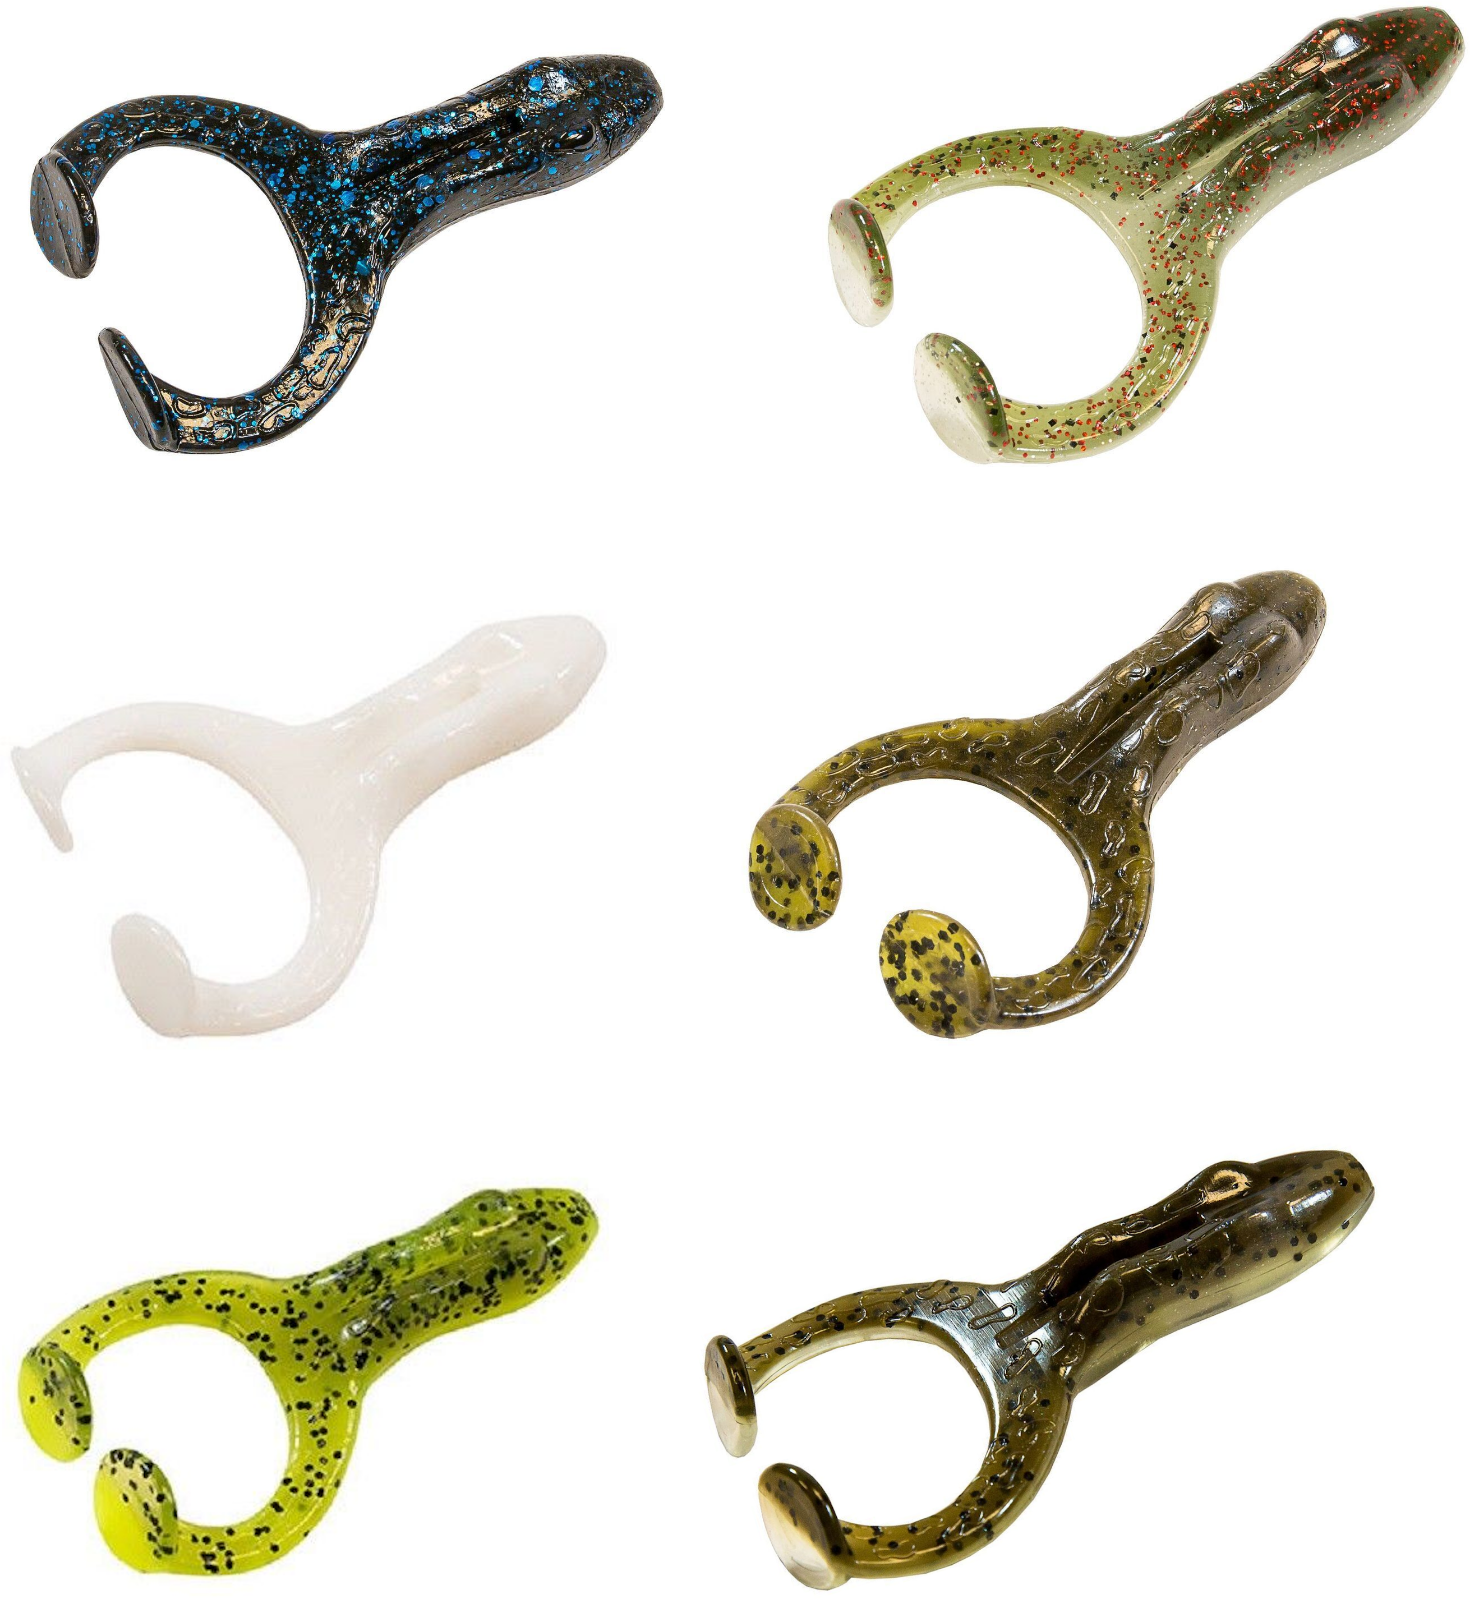 1529 Zman Soft Lure Finesse FrogZ 2.75 Inch 4 per pack Mud Minnow